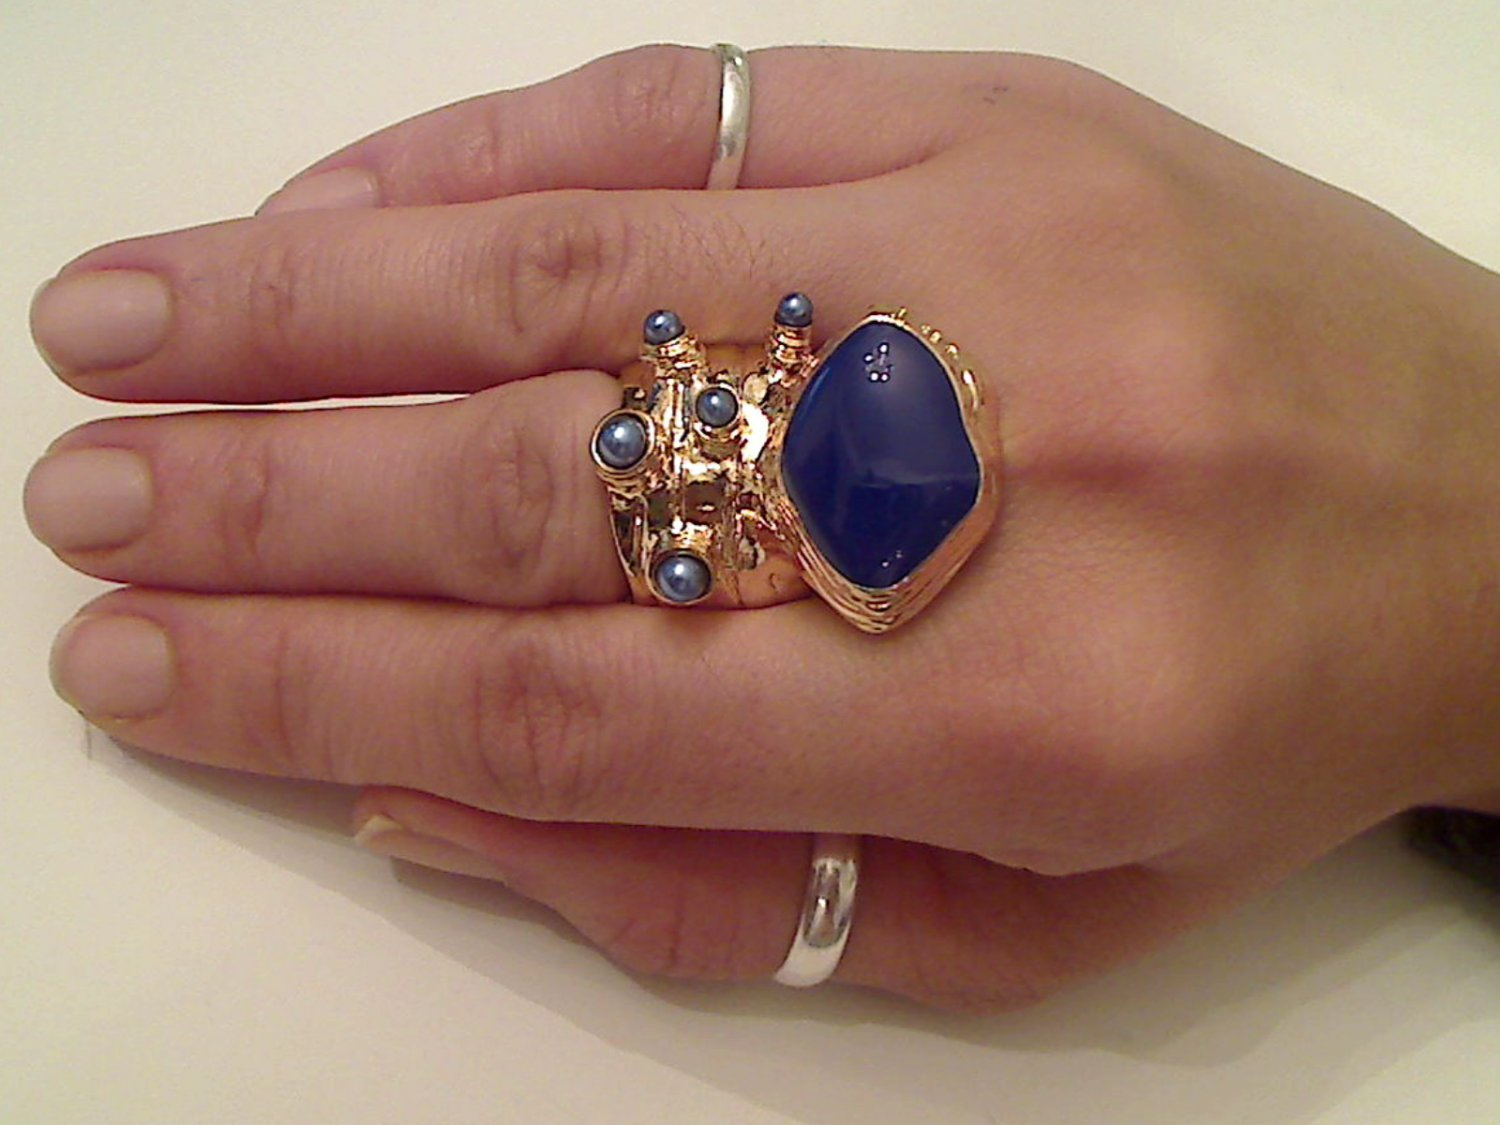 BLUE ARTY CHUNKY SPIKEY  KNUCKLE RING IN GOLD